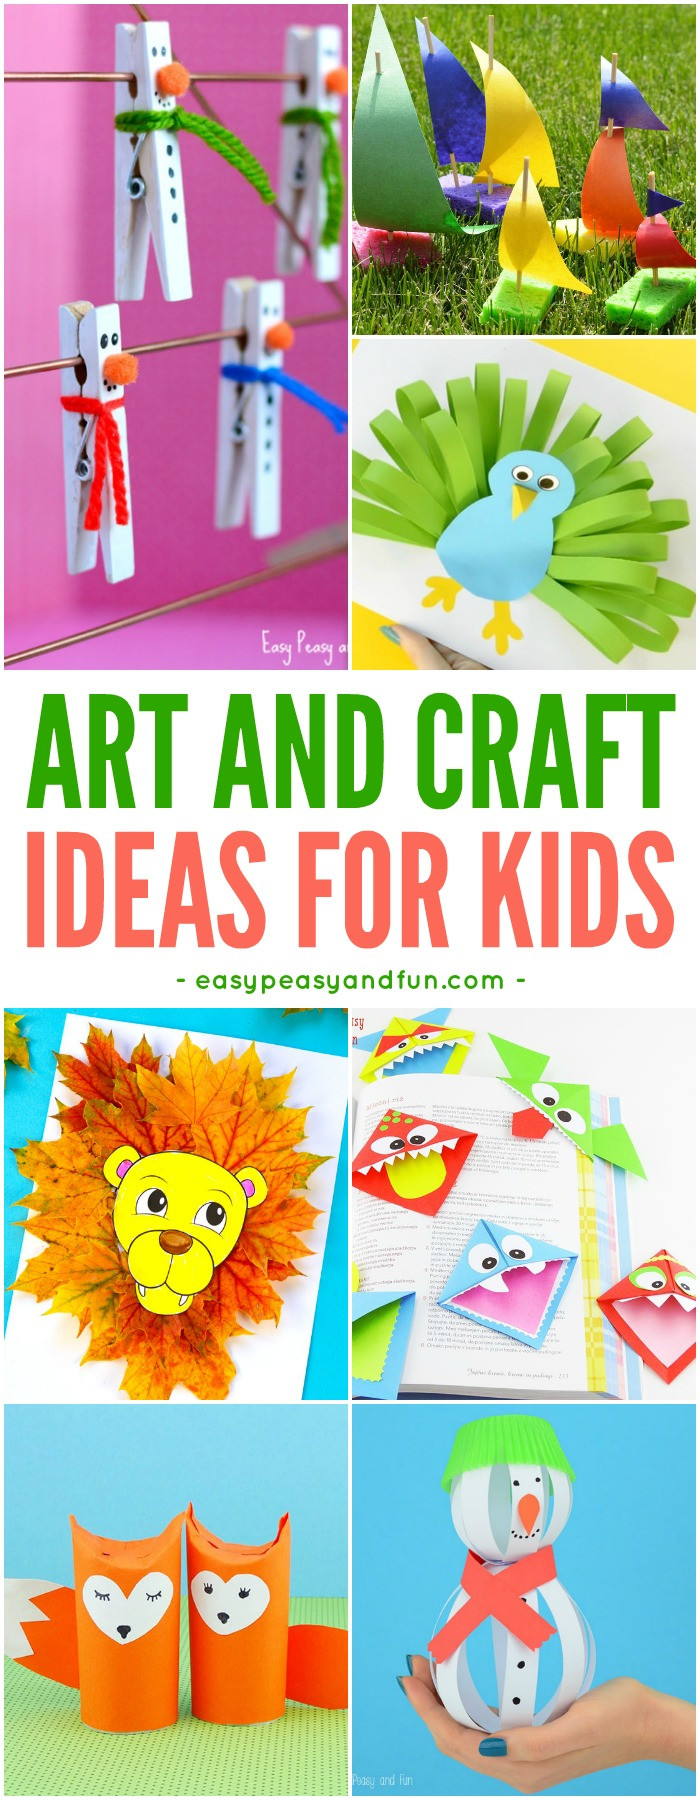 Toddler Arts And Crafts Ideas  Crafts For Kids Tons of Art and Craft Ideas for Kids to